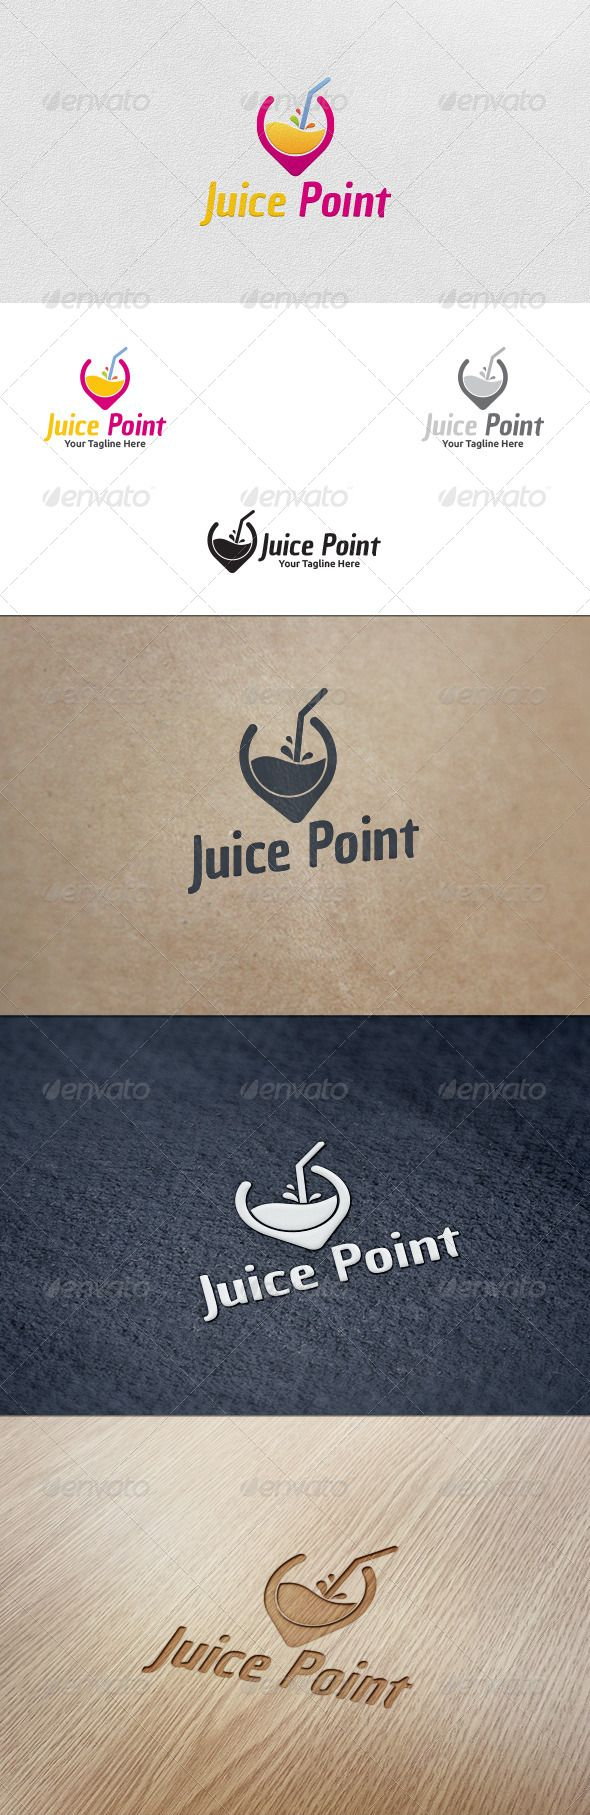 A great example of symbolism is shown here. The designer integrated the iconic image of a waypoint marker as the vessel that contains the juice. The colors that are used are simple and effective in conveying the symbolism.